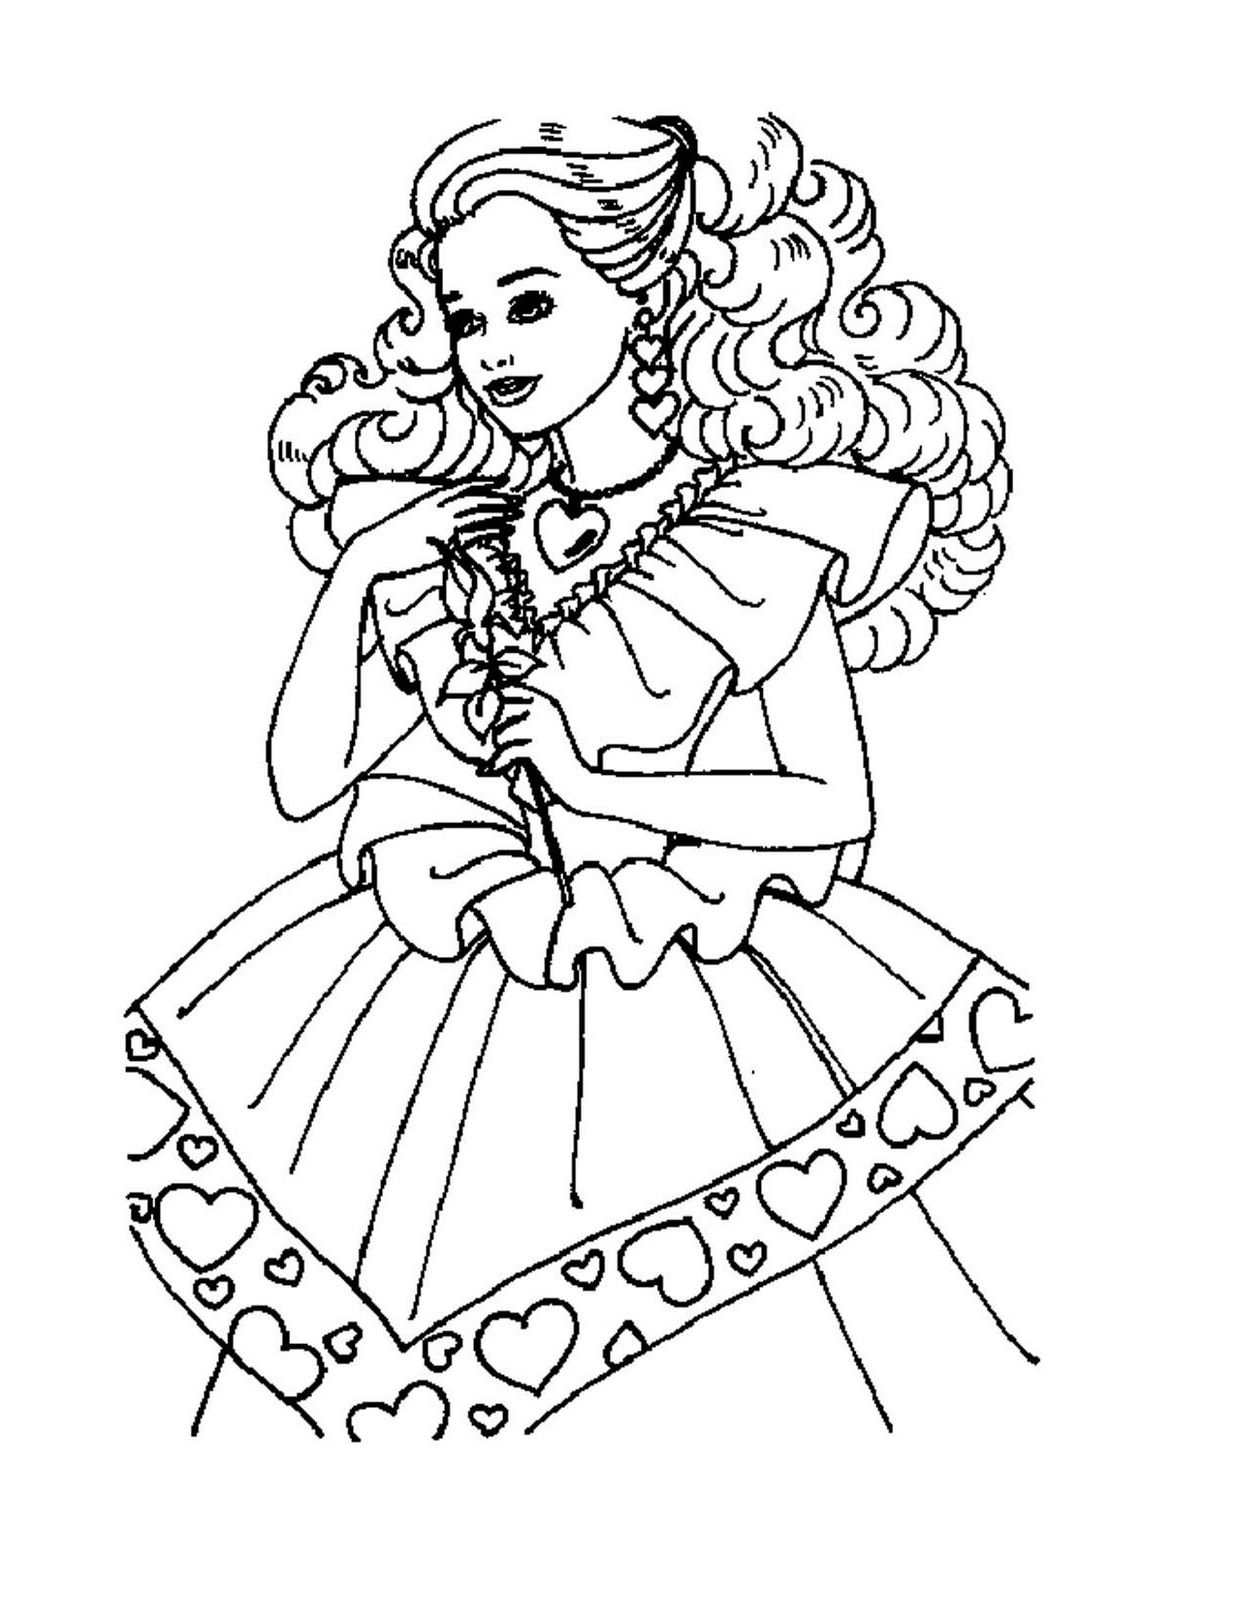 Free printable coloring pages barbie princess - Princess Barbie Coloring Pages